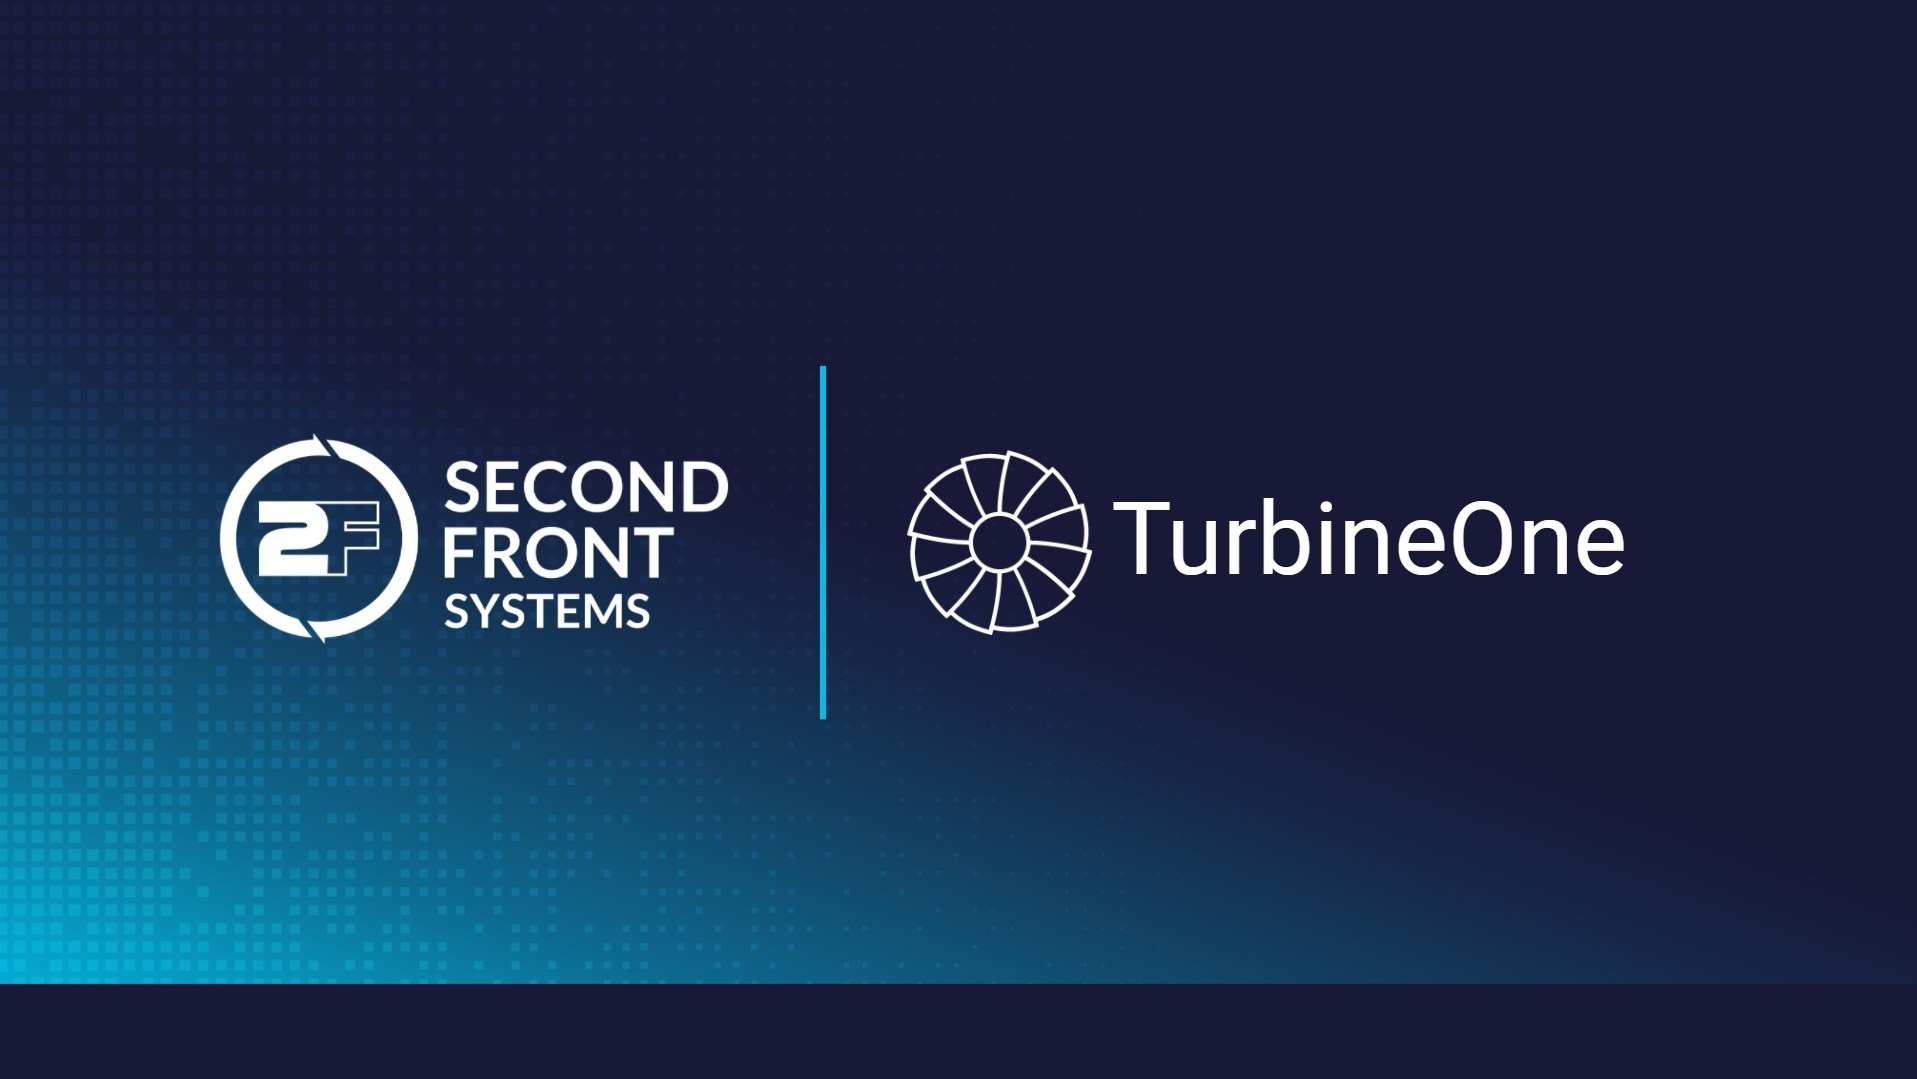 Today, Second Front Systems, the leader in Acquisition Warfare software, and TurbineOne, the premier mission-driven tech lab, announced their partnership to deliver technical demonstrations and engineering-based assessments in support of acquisition decision-making for U.S. government agencies via the software platform Atlas Fulcrum.